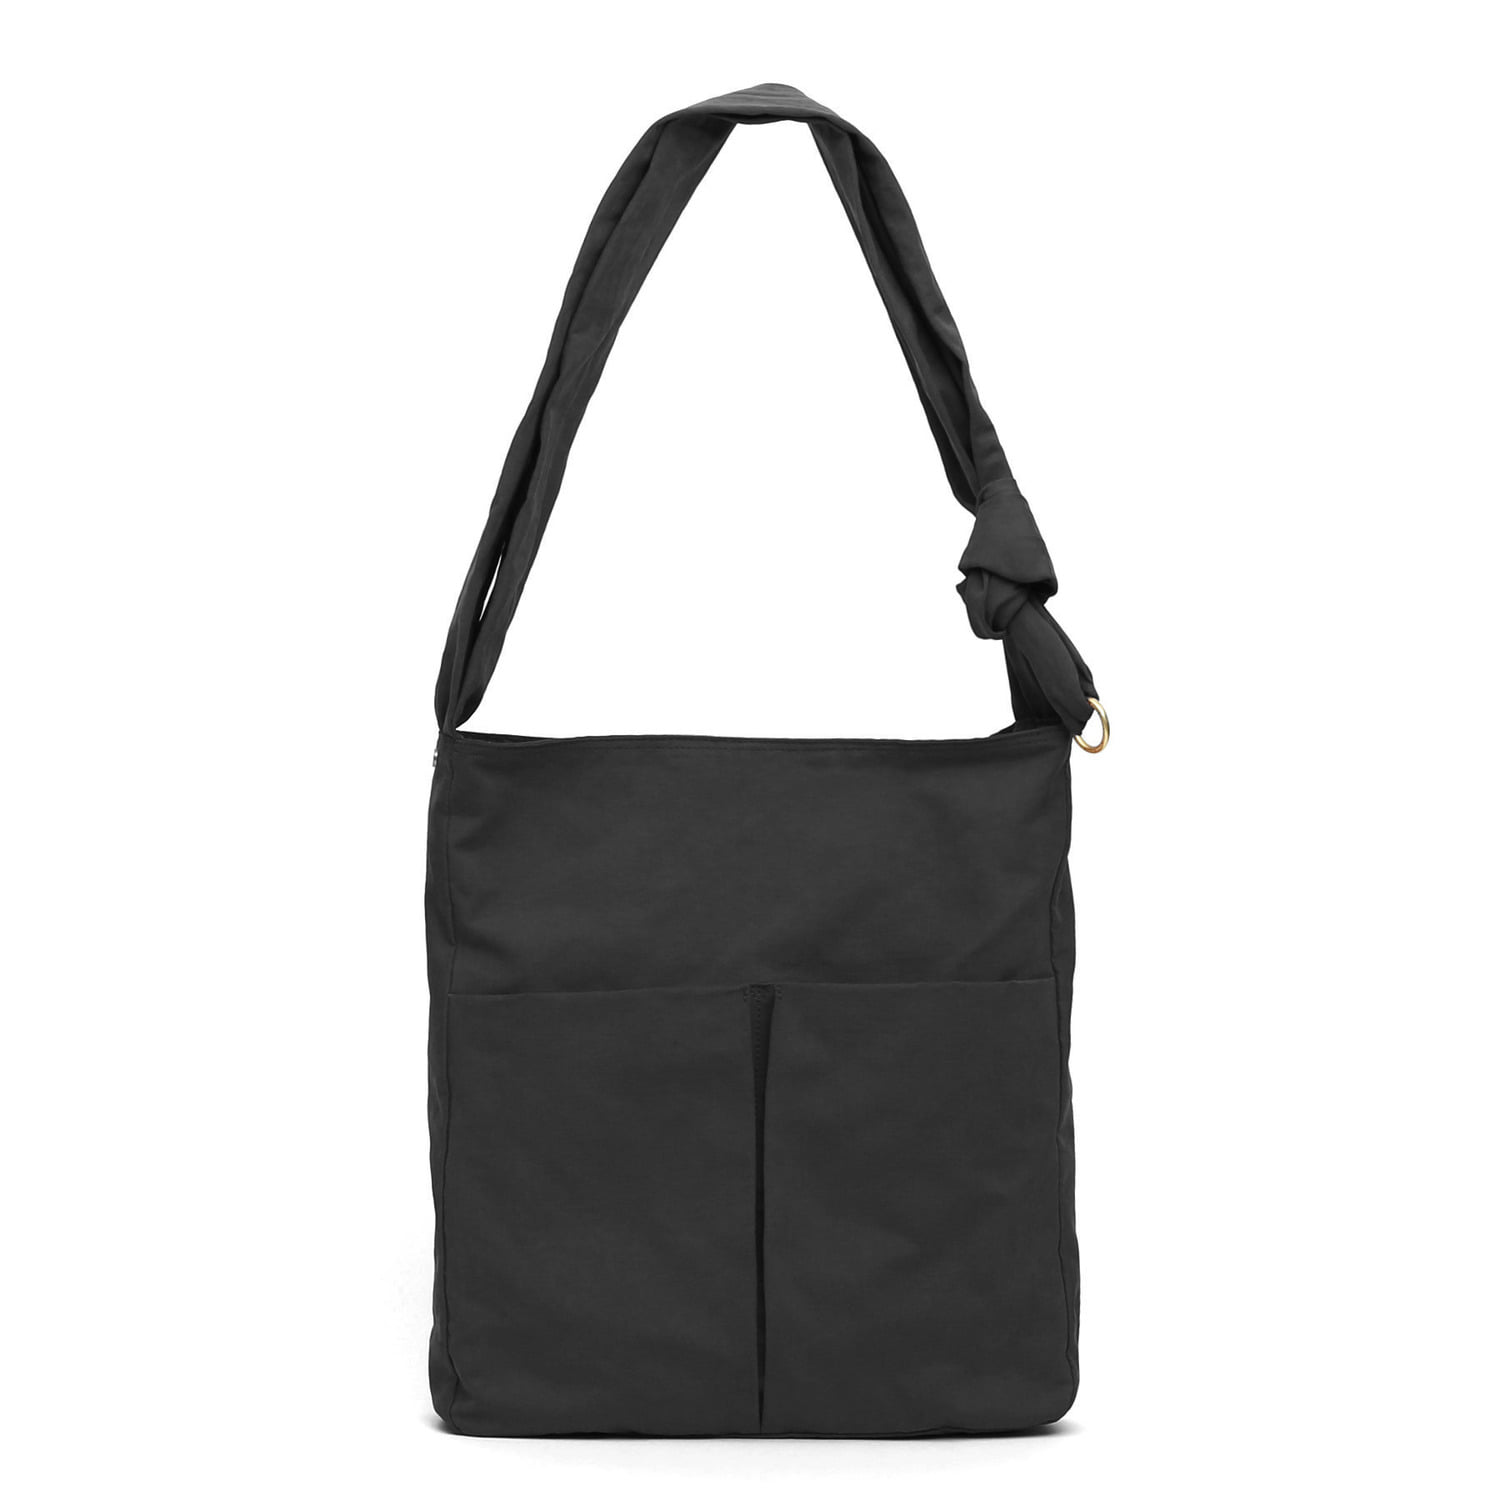 [3차 재입고] SQUARE BAG / WRINKLE / NPC / DARK BLACK